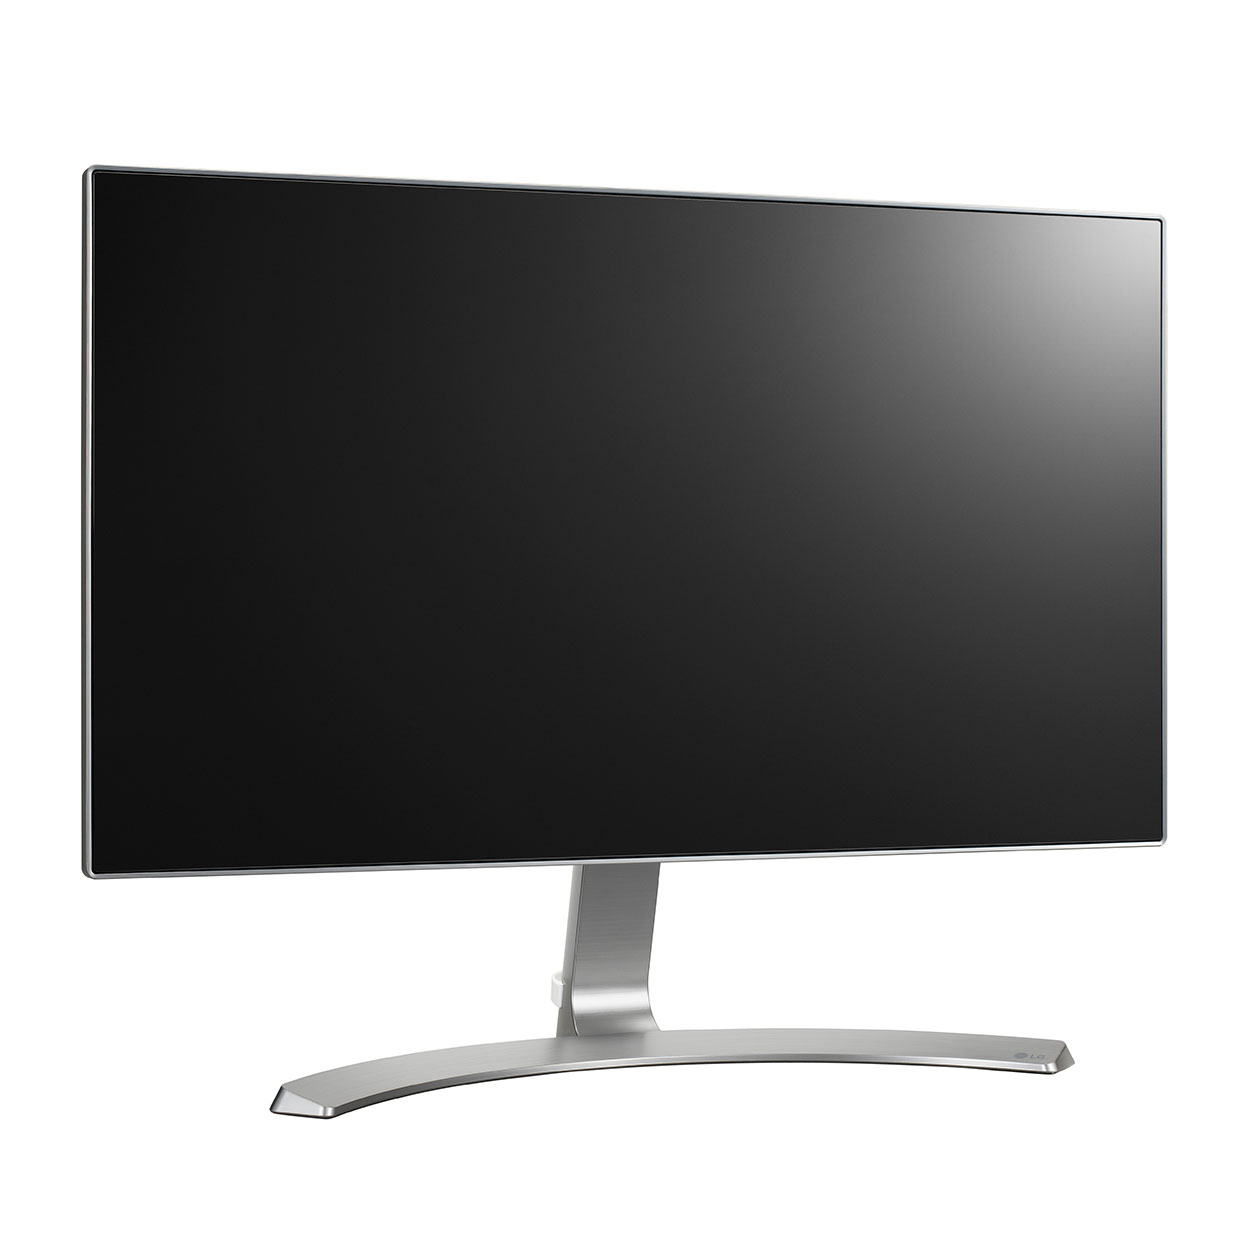 Lg 24 led 24mp88hv s ecran pc lg sur ldlc for Ecran pc large